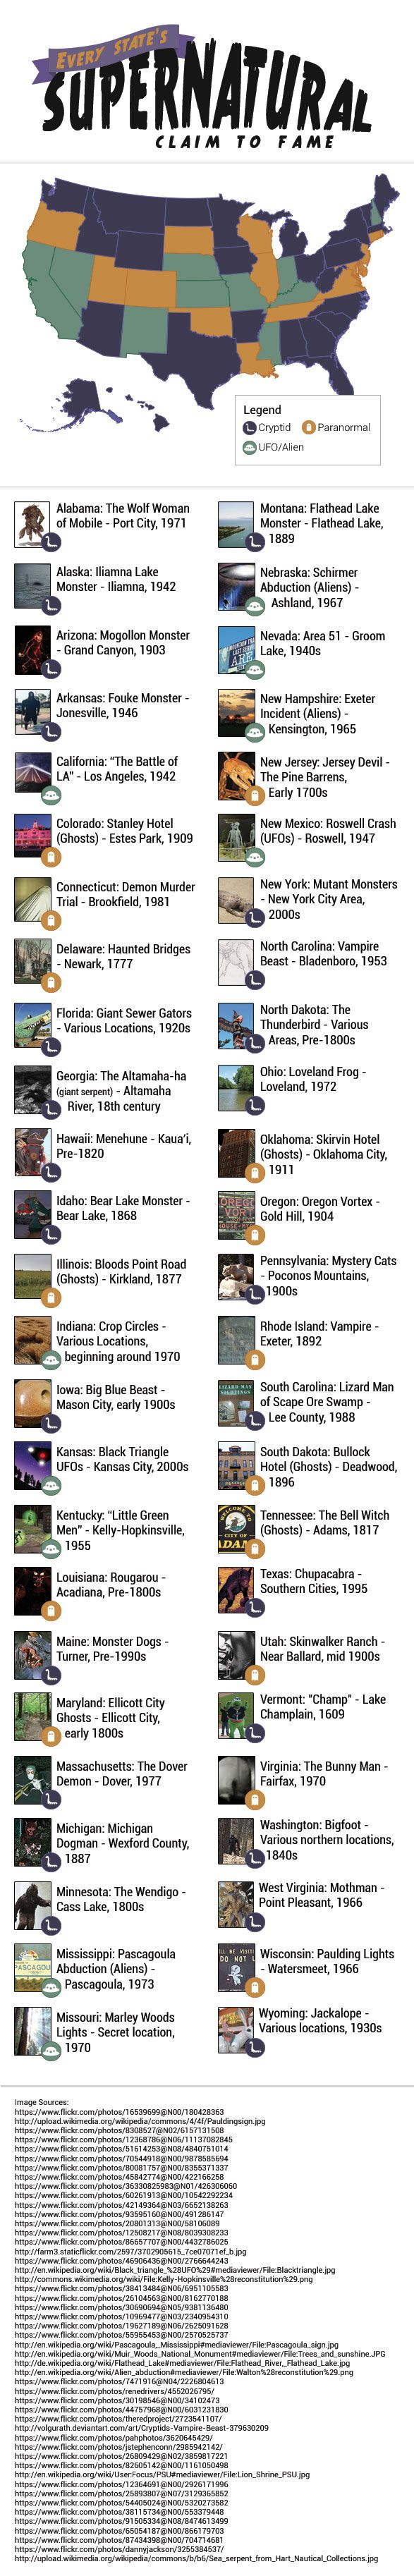 Each State's Cryptid or Monster